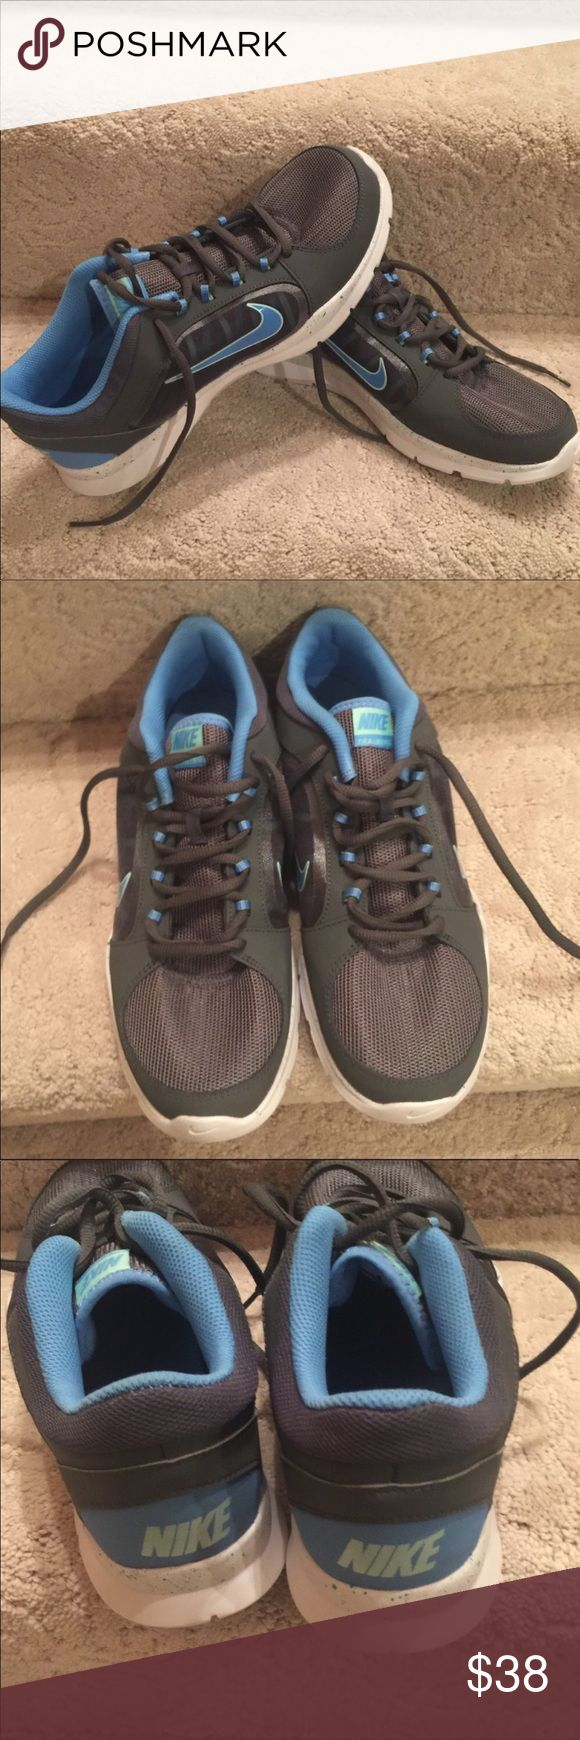 NWO Nike Trainers NWOB Nike Trainers. Blue & Gray Size 10. Reposhing because they do not fit. ☹️ Only Trying To Recoup Cost & 1/2 Of Shipping Fee. Price Firm Unless Bundled! Nike Shoes Athletic Shoes